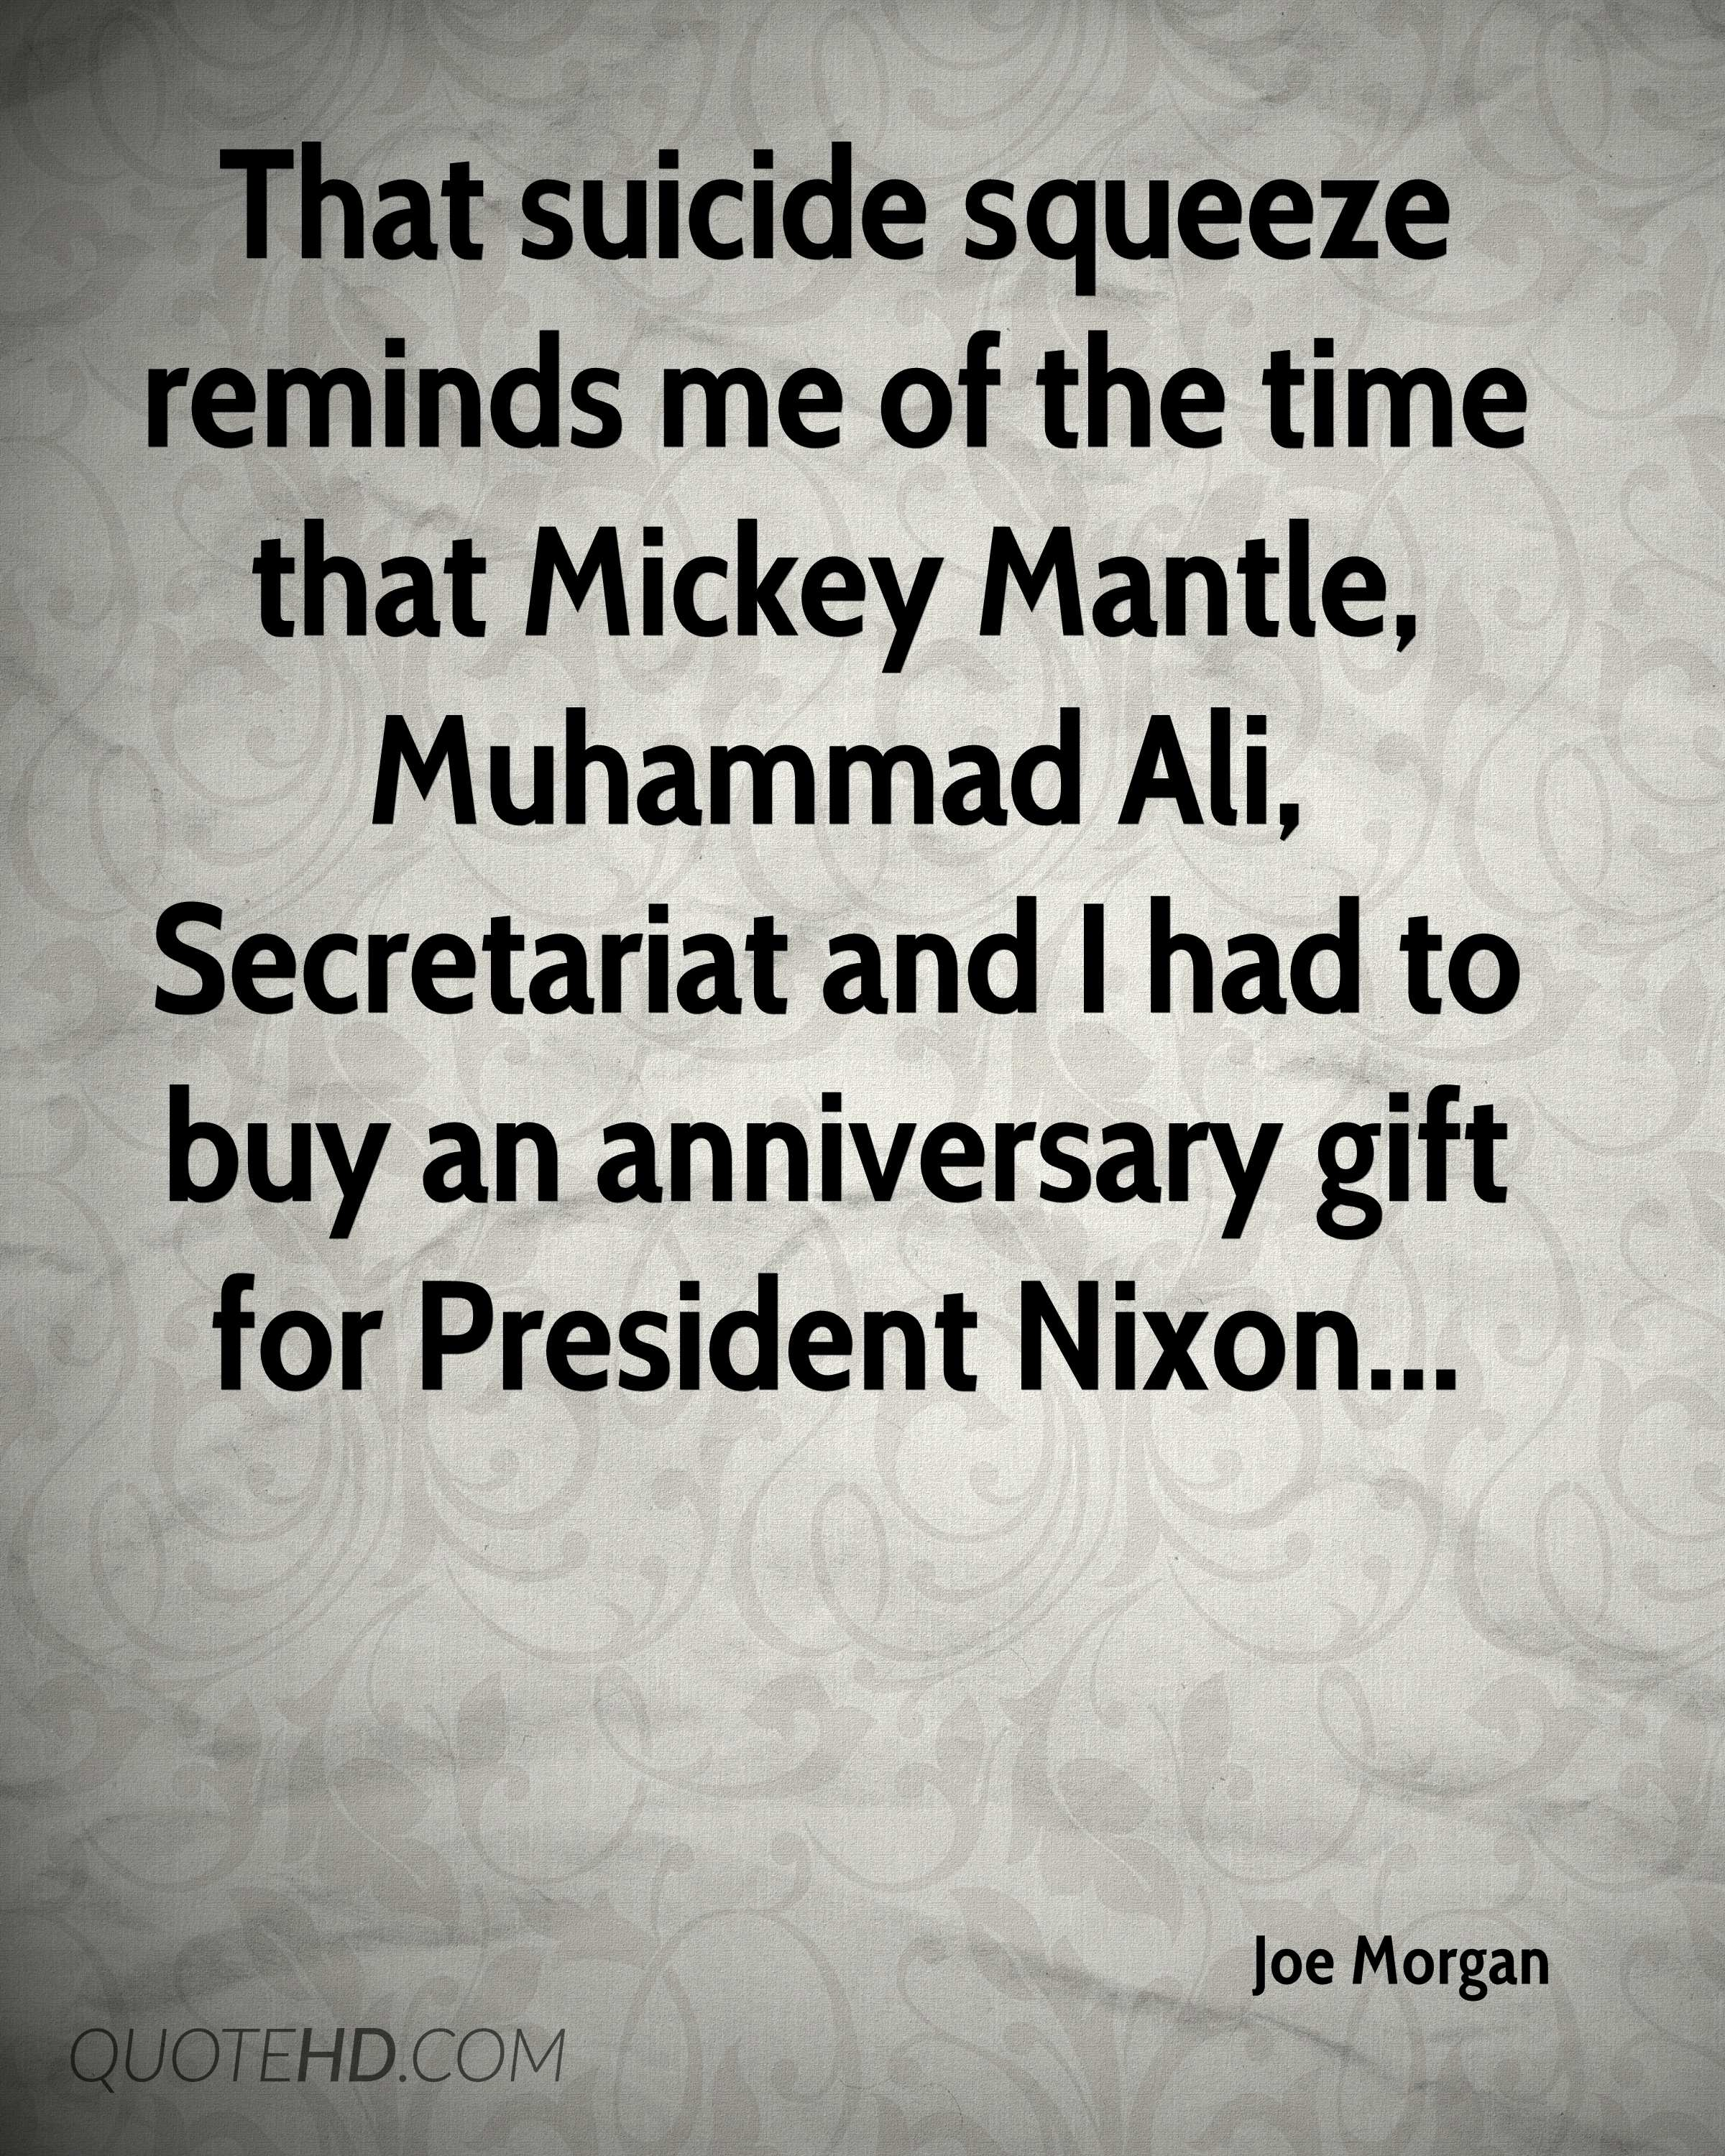 That suicide squeeze reminds me of the time that Mickey Mantle, Muhammad Ali, Secretariat and I had to buy an anniversary gift for President Nixon...